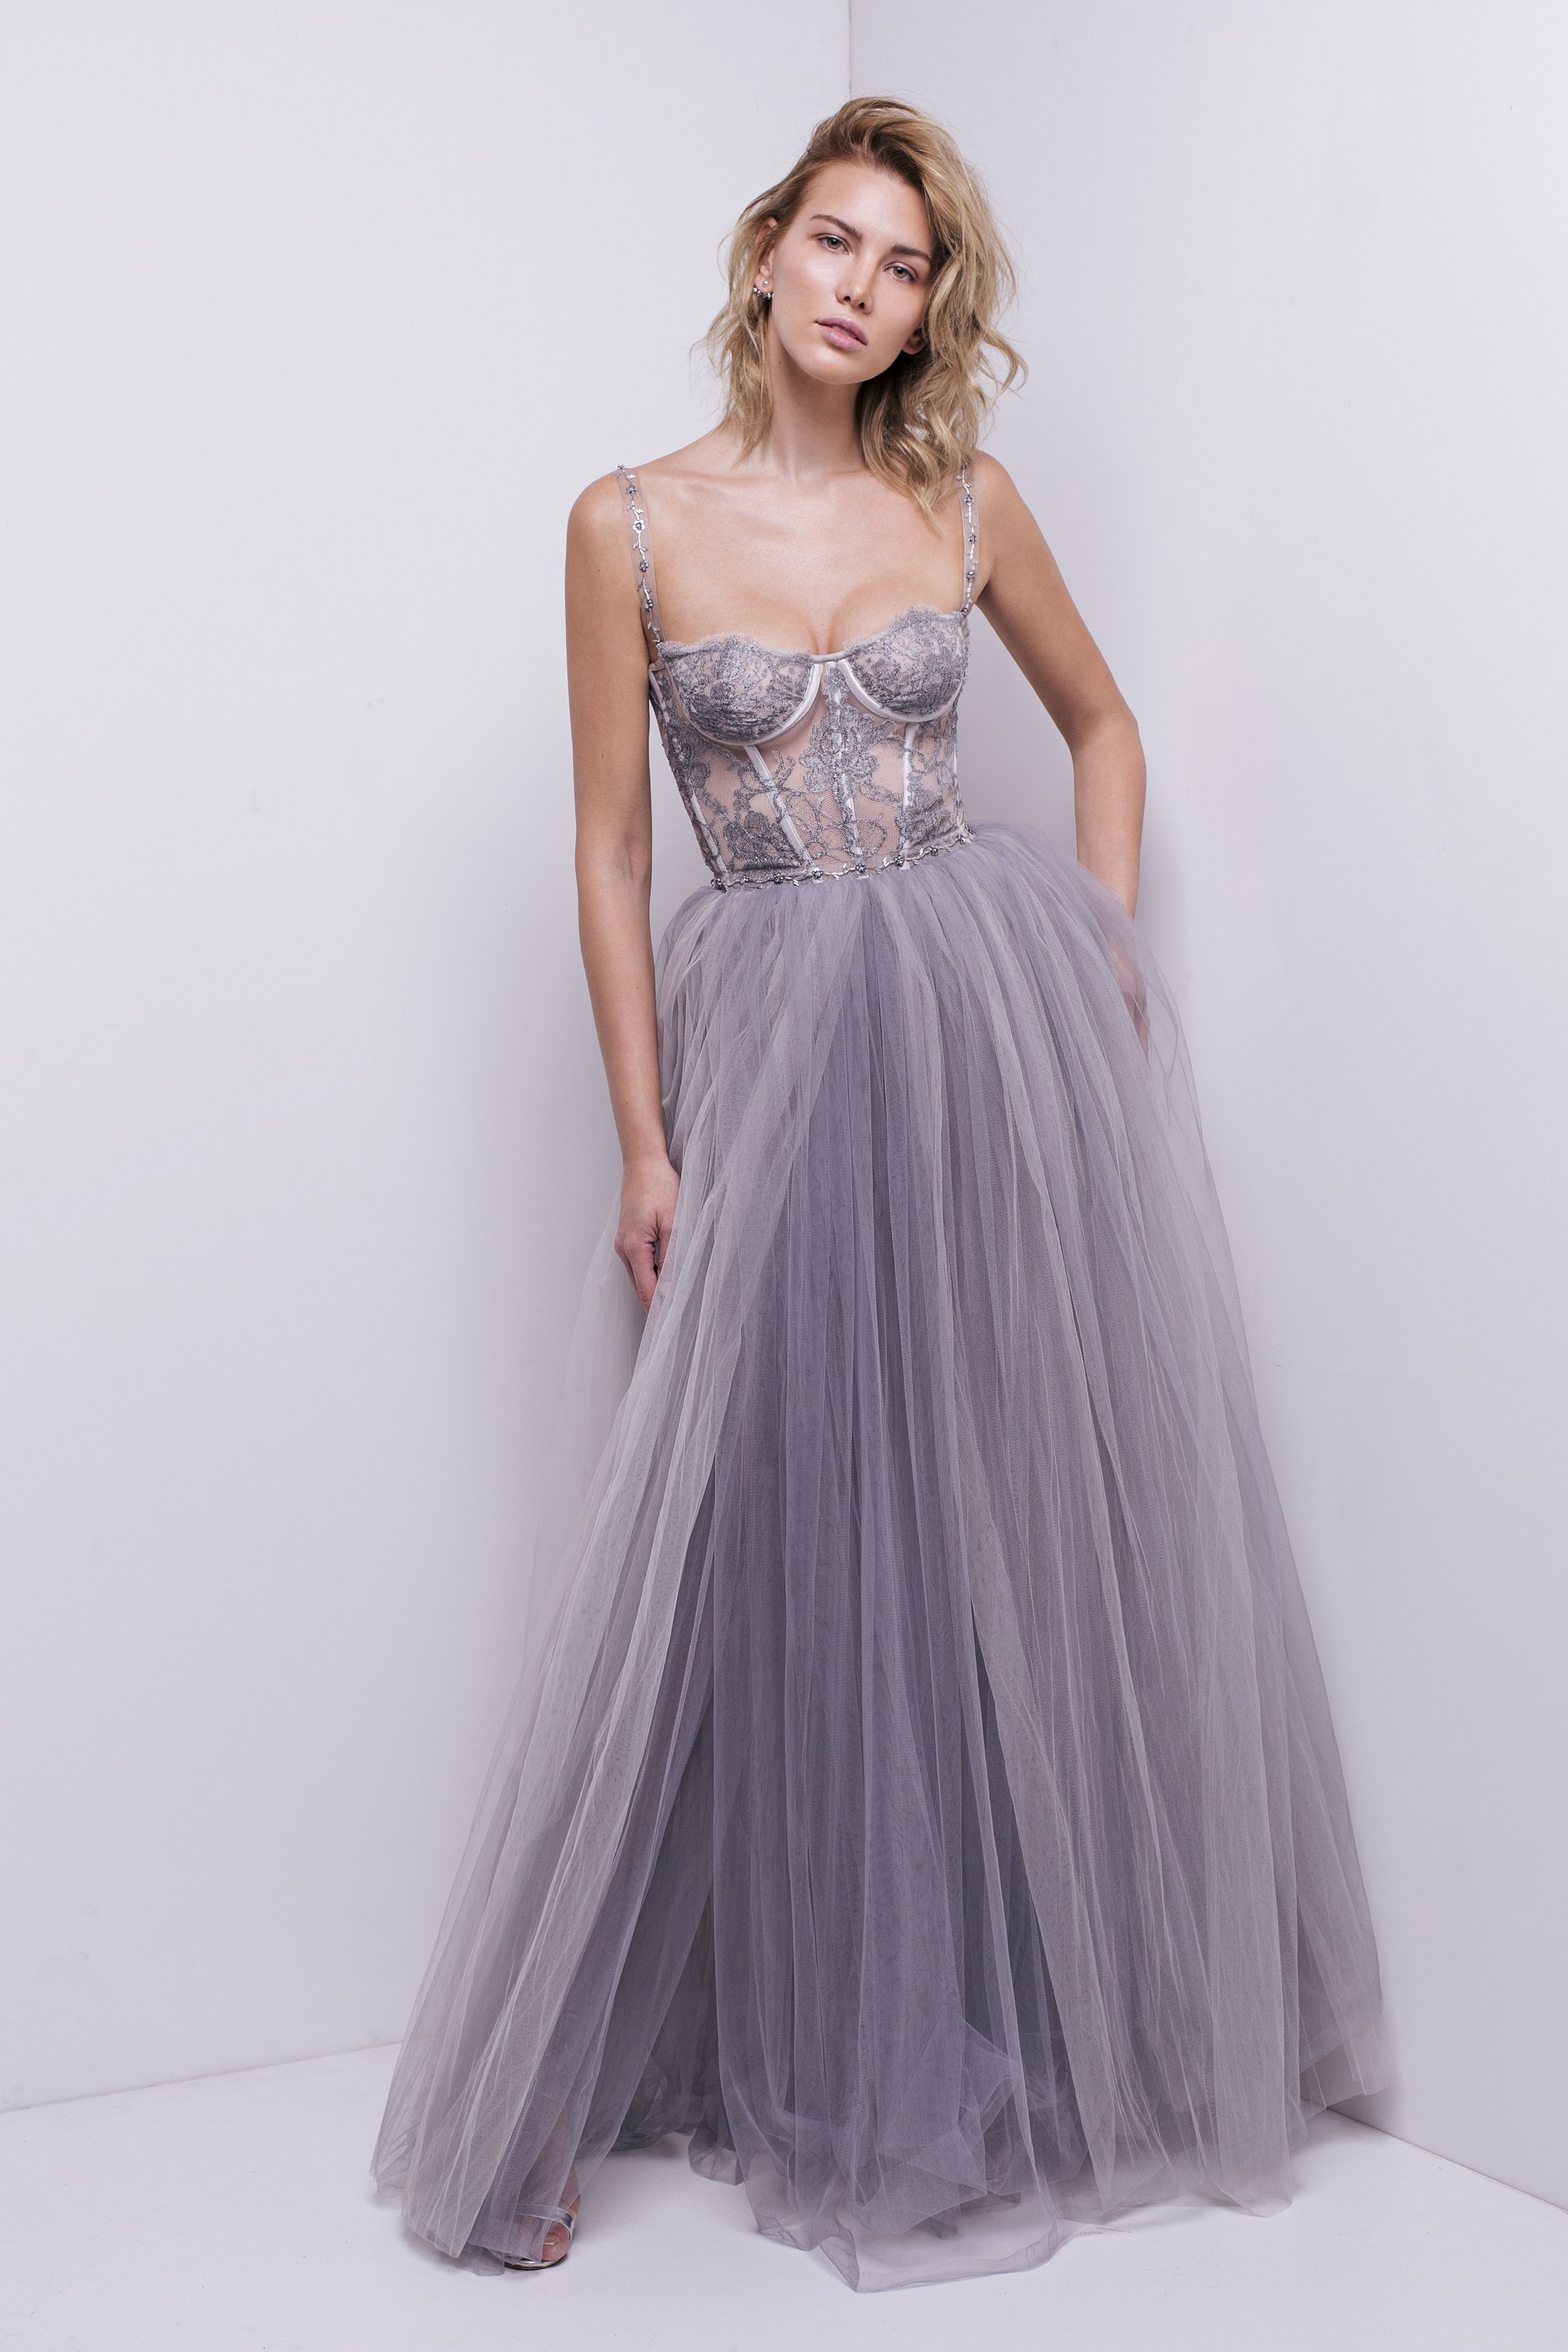 AURELIANA - SILVER CHANTILLY LACE TULLE GOWN